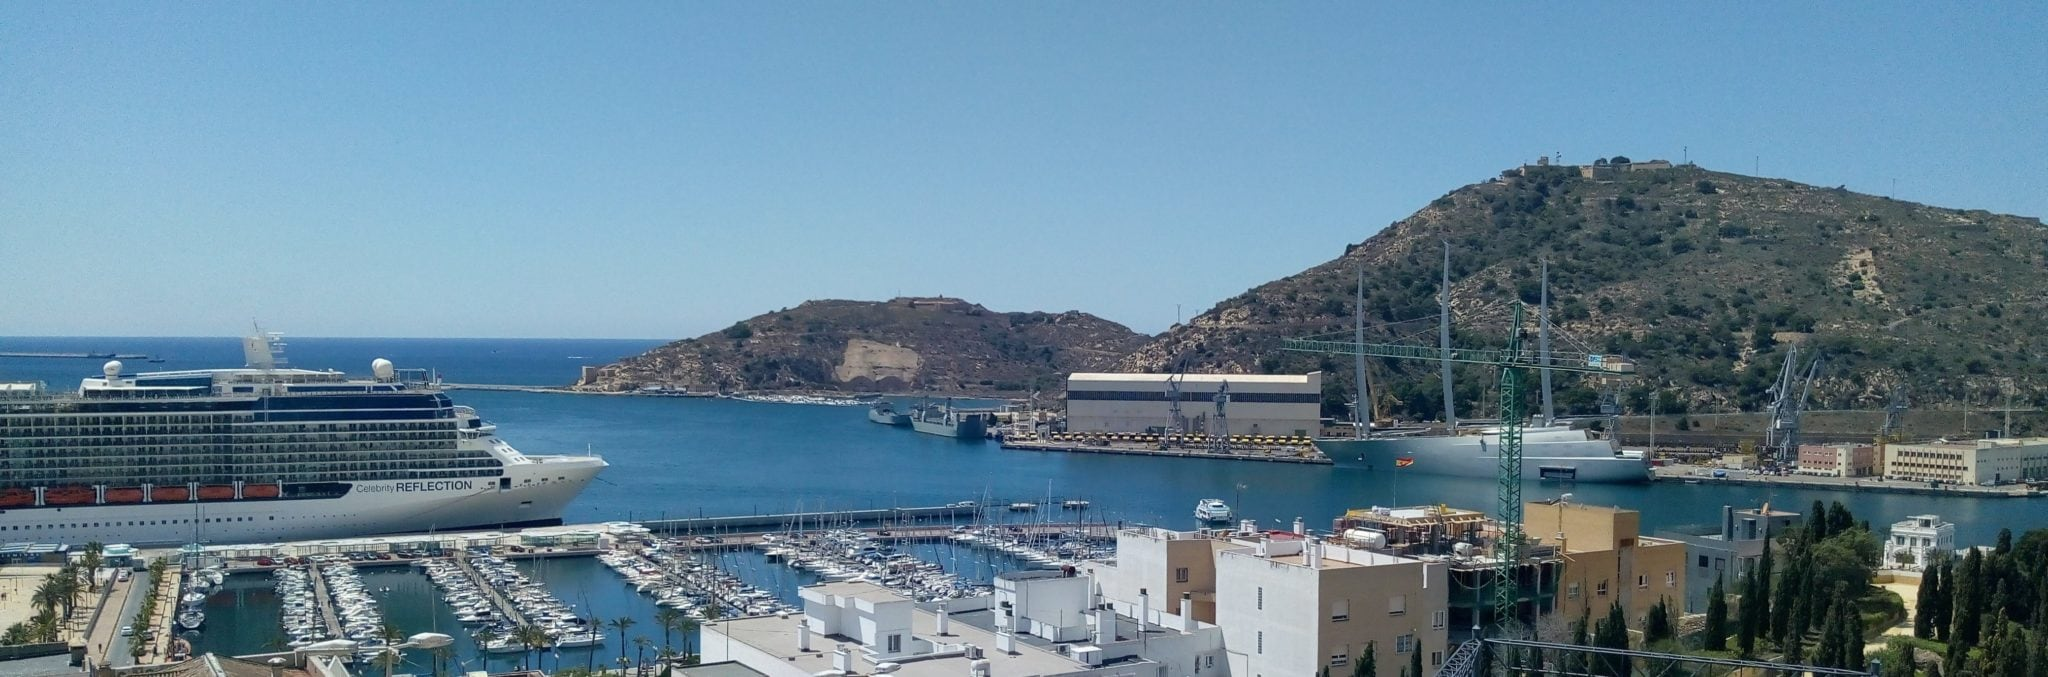 Cartagena Spain cruise ship port